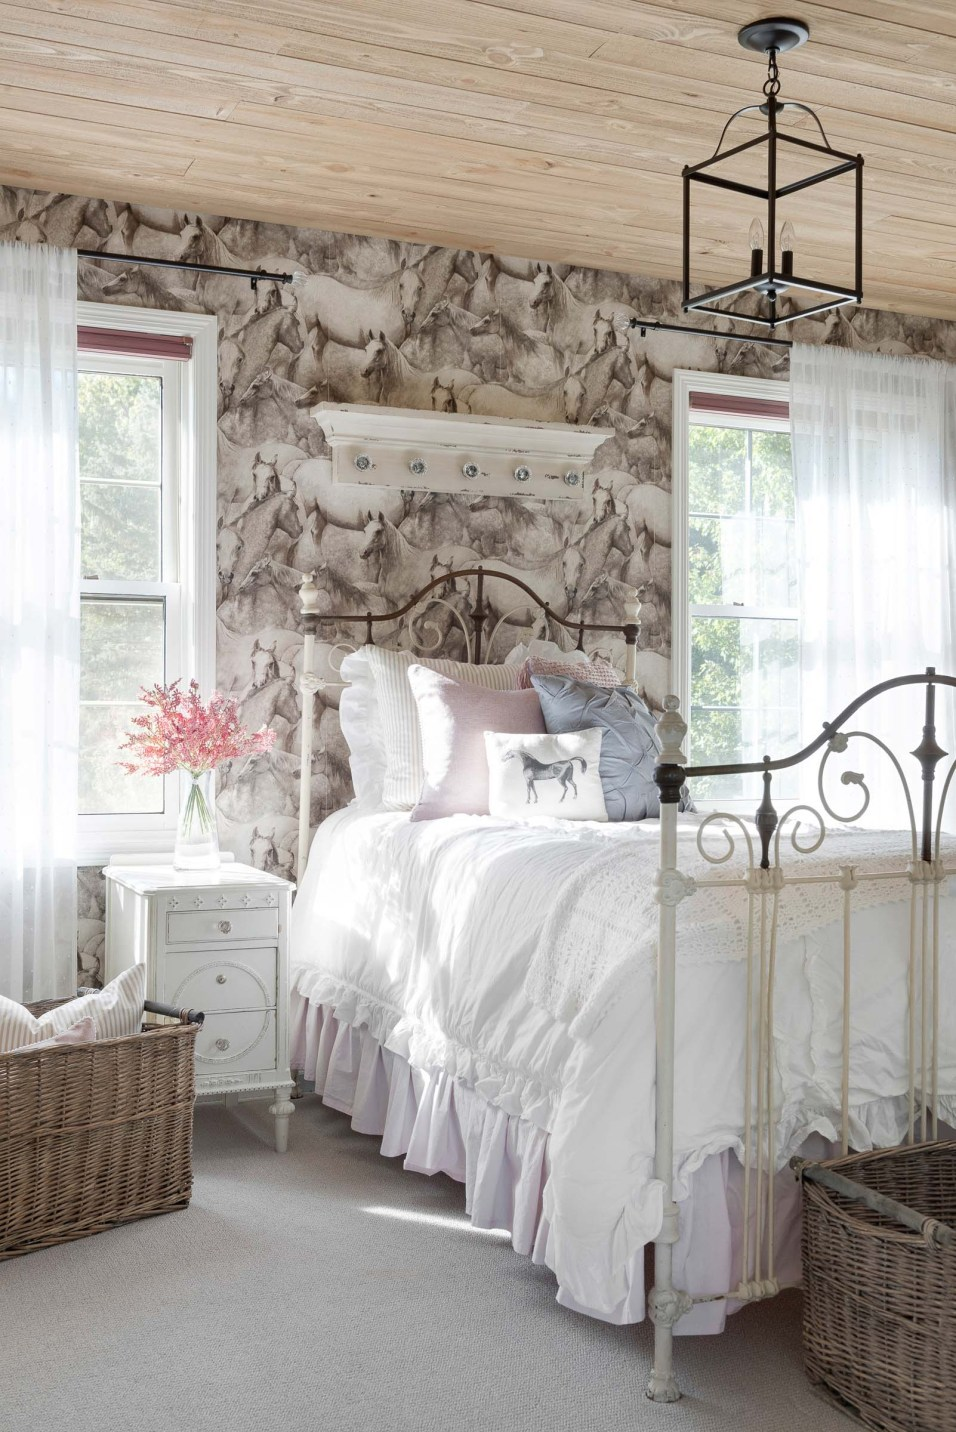 Farmhouse Girls Bedroom with Horse Wallpaper